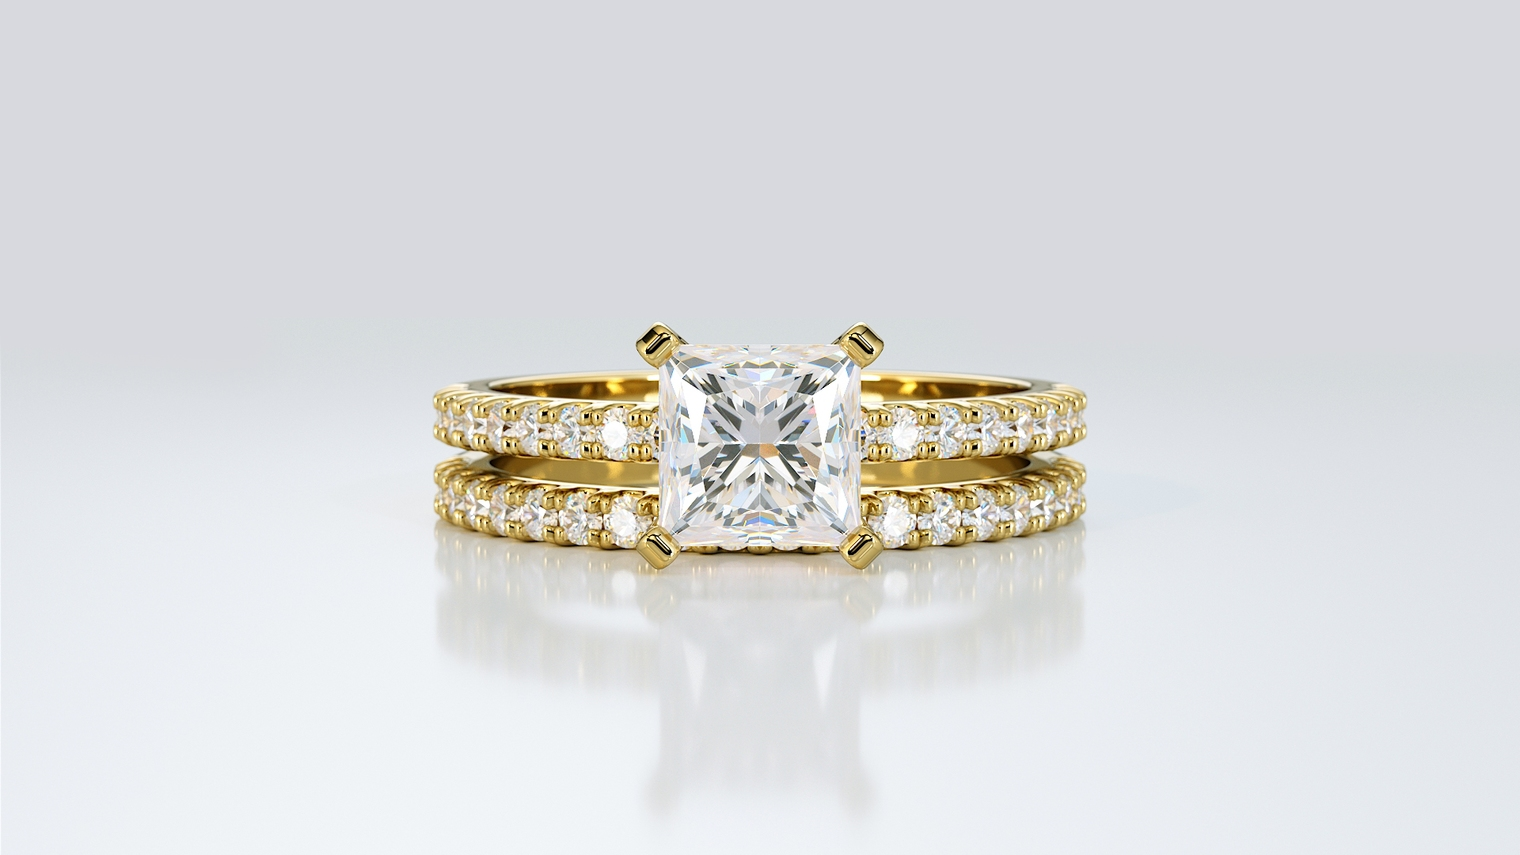 Bridal Set, Engagement Ring, Wedding Ring, Princess Shape, Yellow Gold, Diamonds